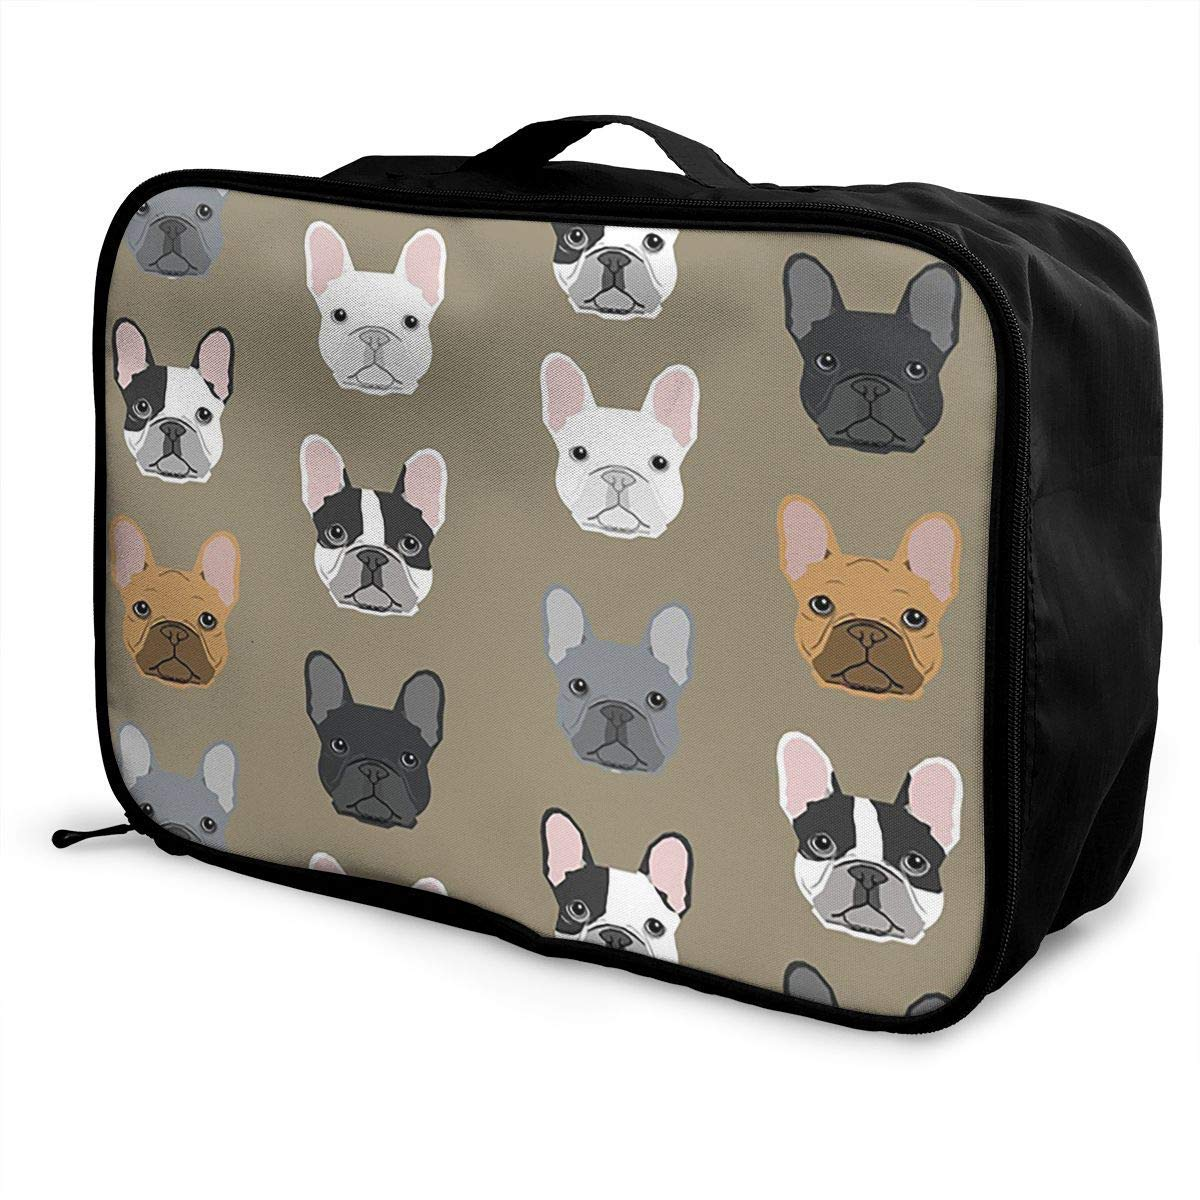 Portable Luggage Duffel Bag French Bulldog Design Sweet Dogs Travel Bags Carry-on In Trolley Handle